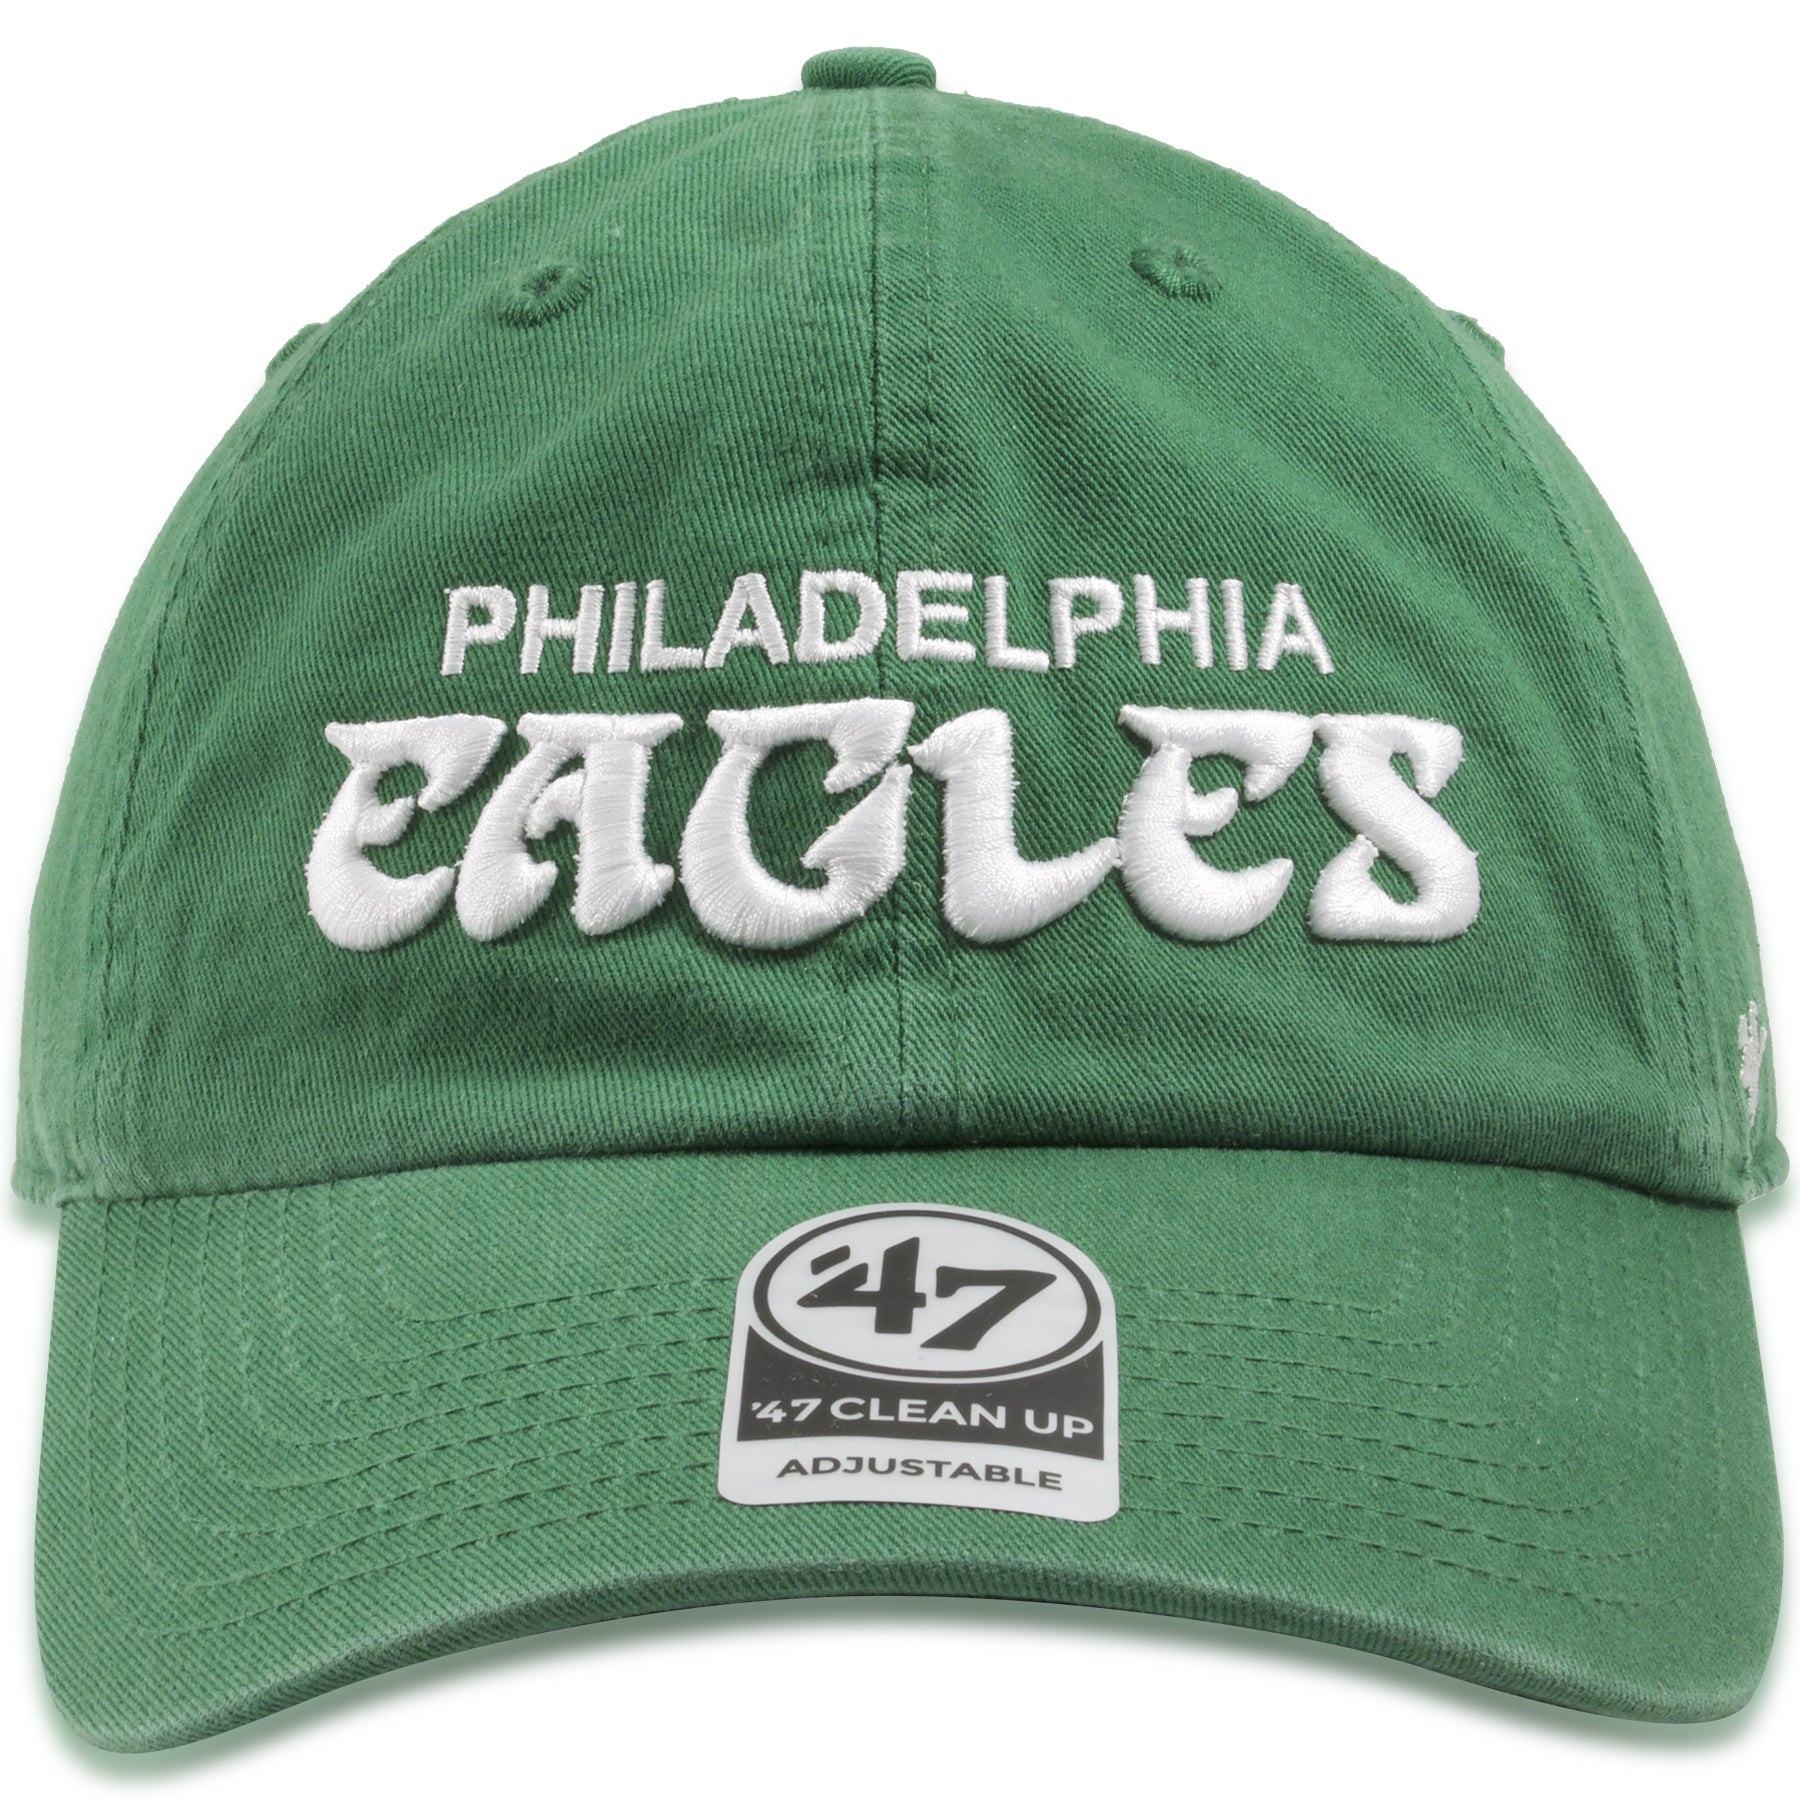 01a6962fa1545 Philadelphia Eagles Vintage Script Wordmark Kelly Green Dad Hat ...